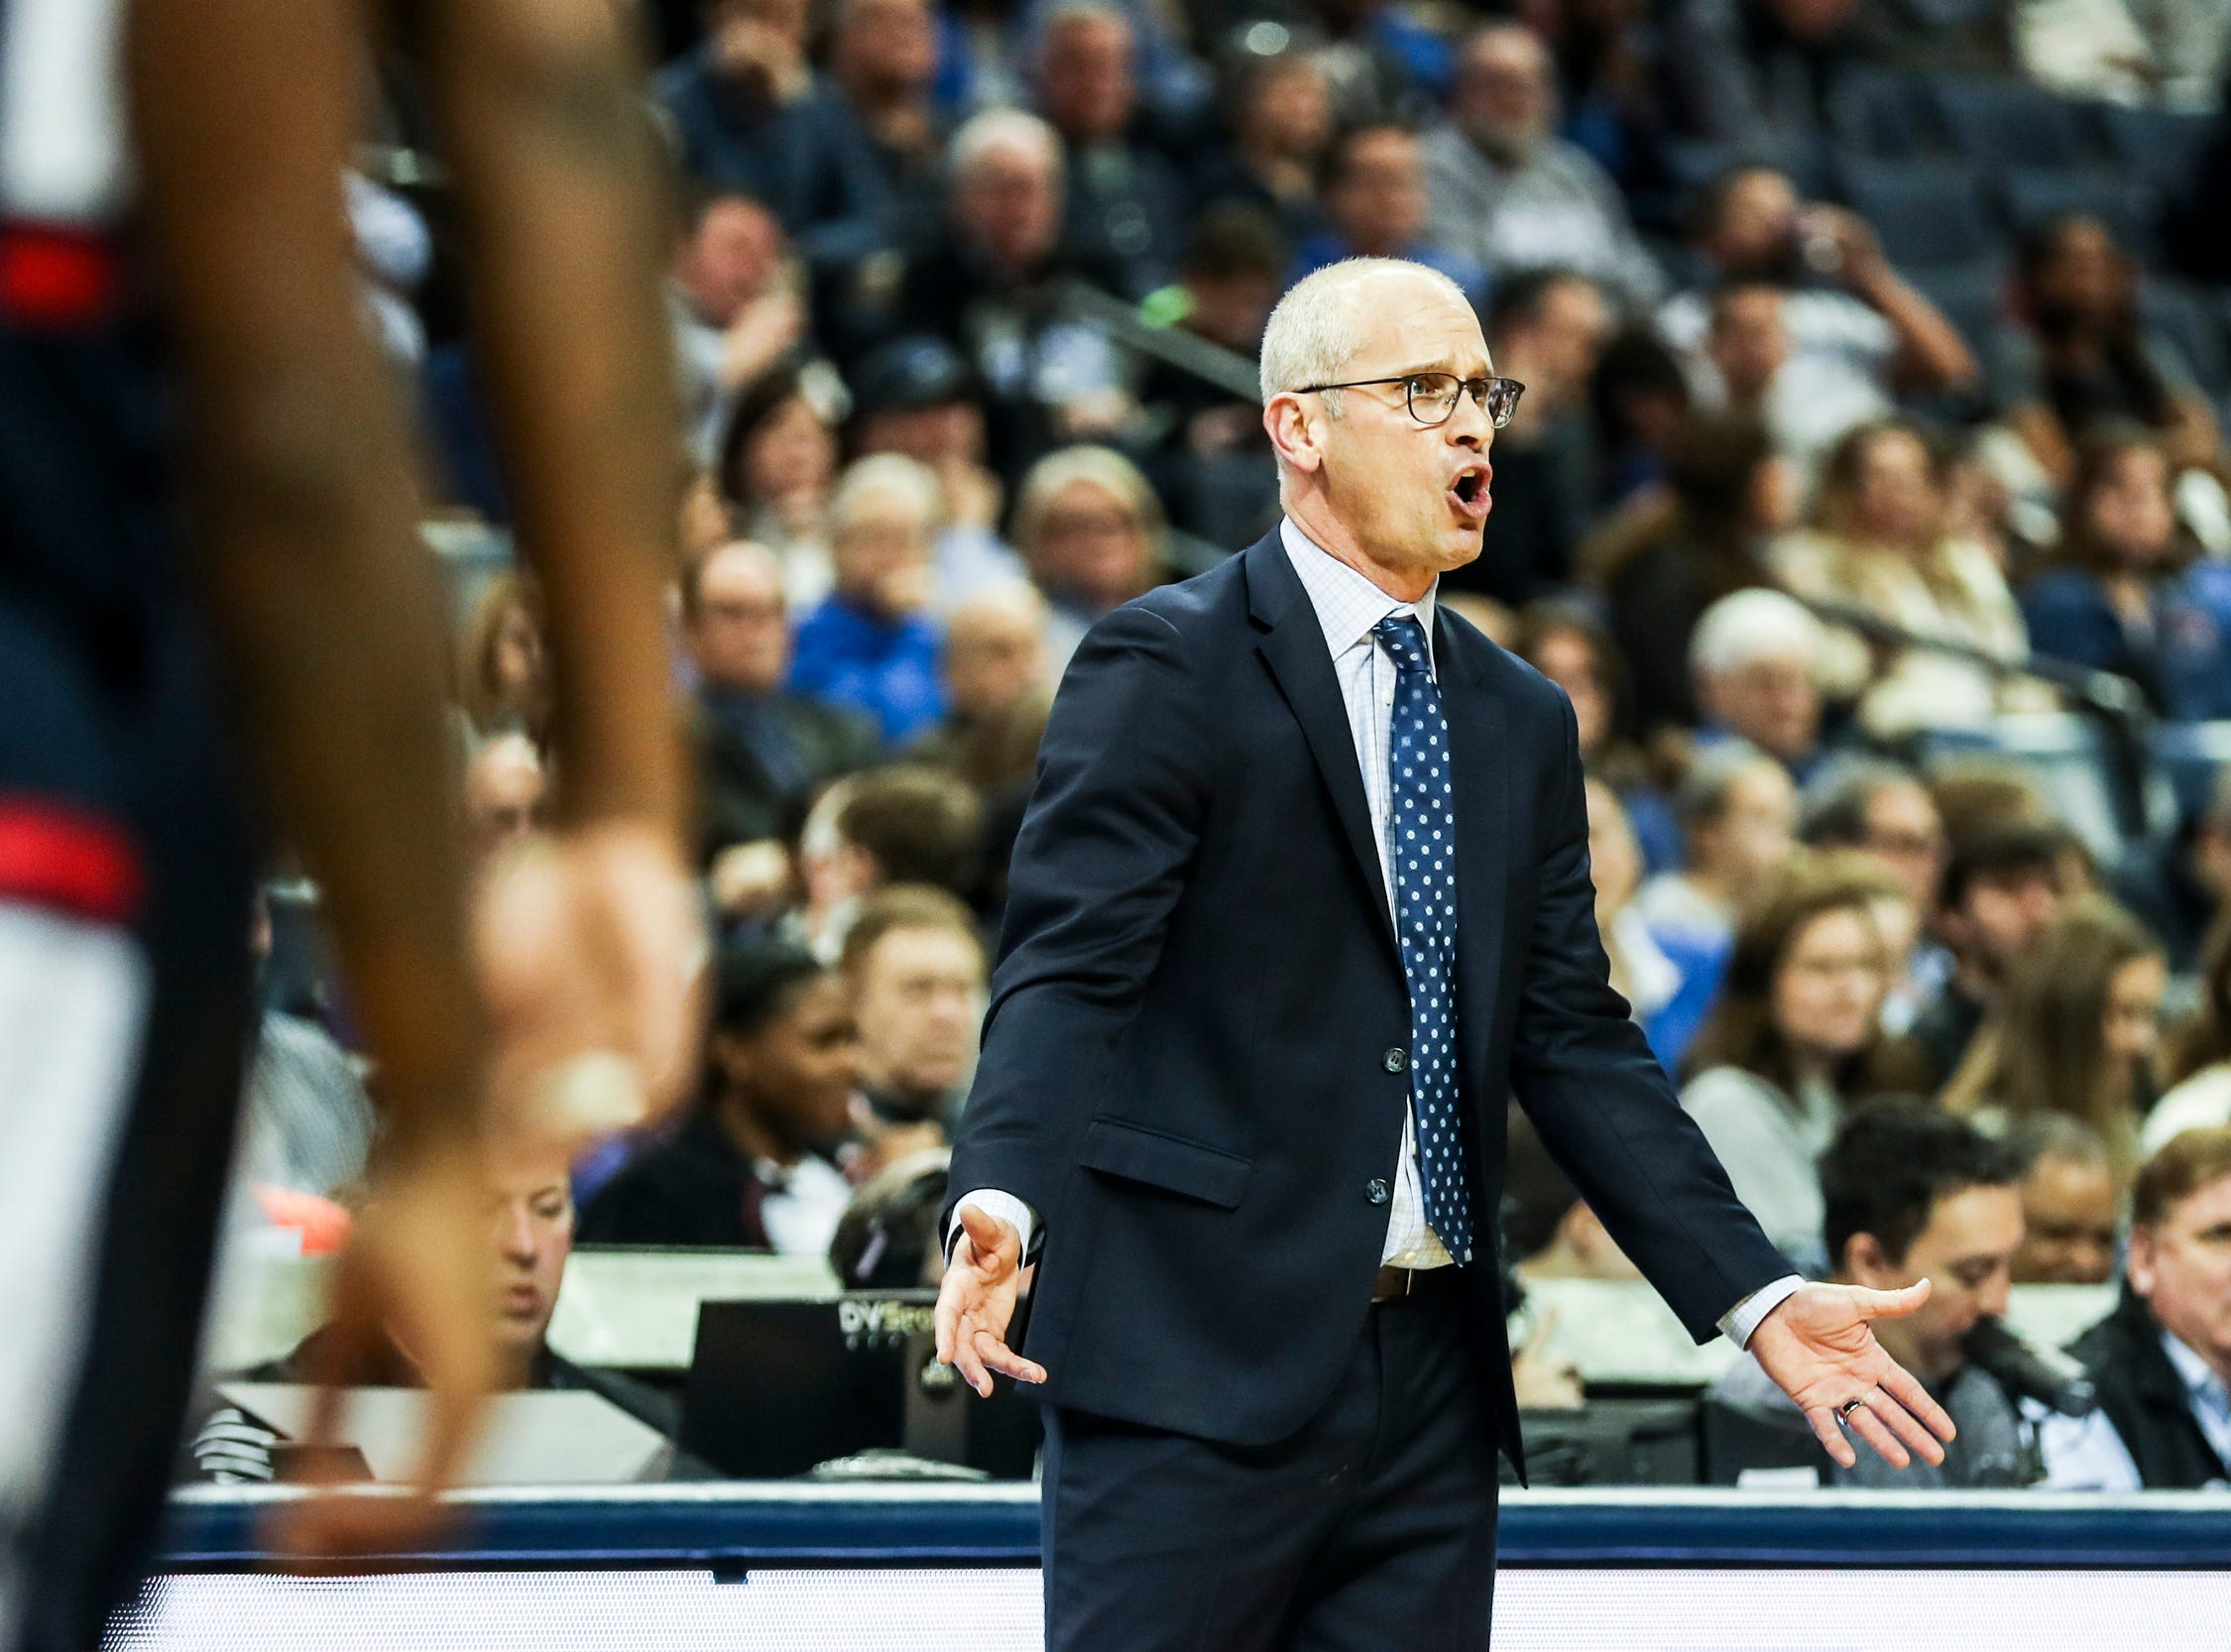 February 10, 2019 - Connecticut's head coach, Dan Hurley, yells out to his players during Sunday's game versus Connecticut at the FedExForum.